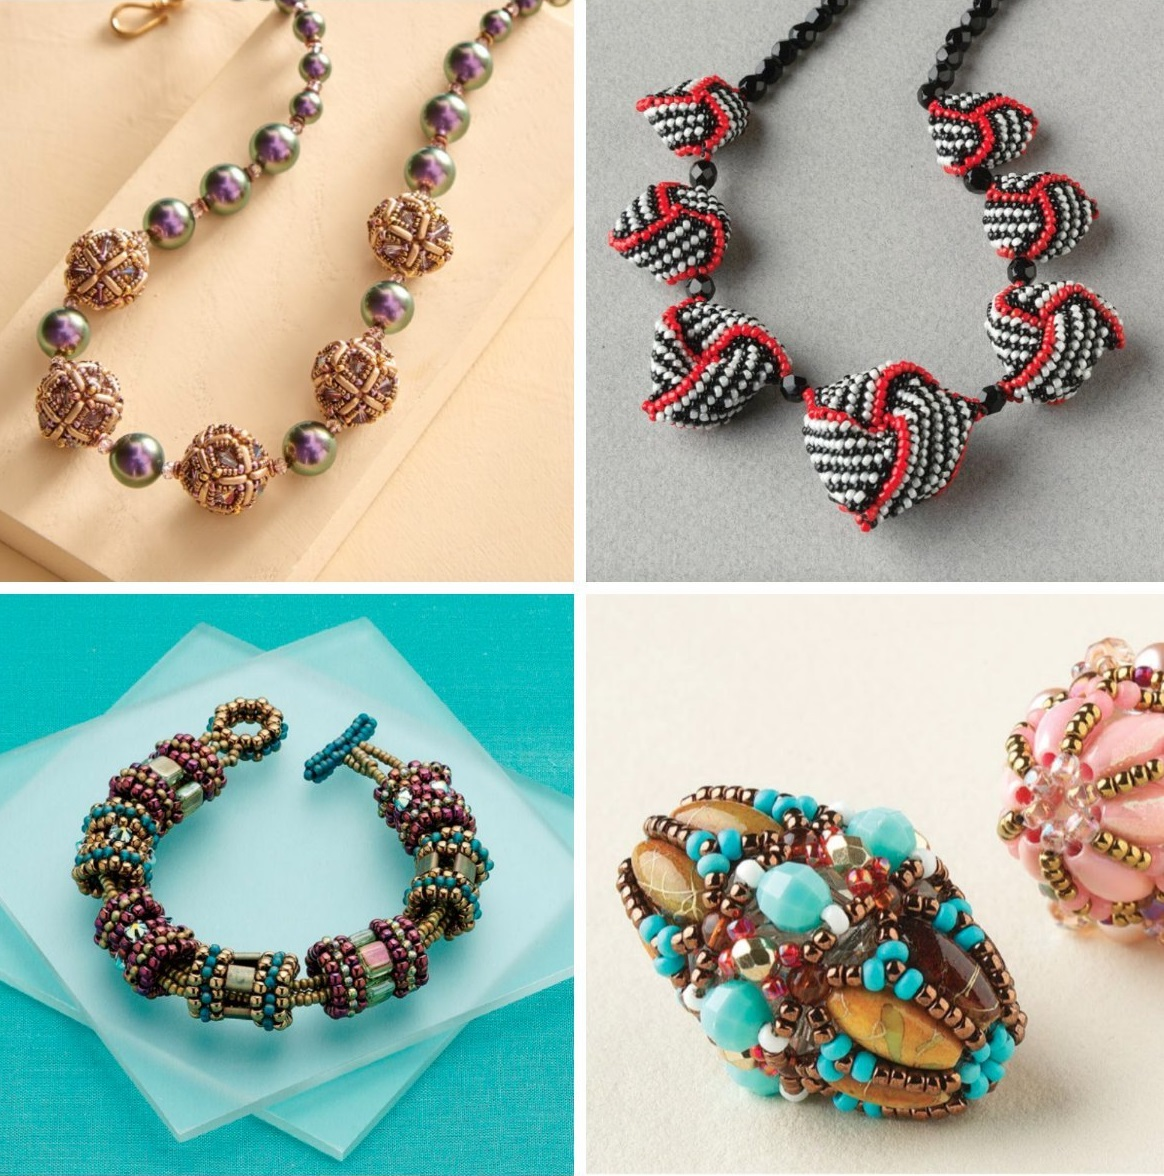 Get the eBook 12 Beaded Bead Projects to Make for creative ways to play with dimension. Clockwise from top left: Swirl Beaded Bead Necklace by Diane Fitzgerald, Opulent Octahedron Necklace by Cindy Holsclaw, Carousel Bracelet by Laura Andrews, and Ornamental Beauty Beaded Bead by Maria Teresa Ferreira.